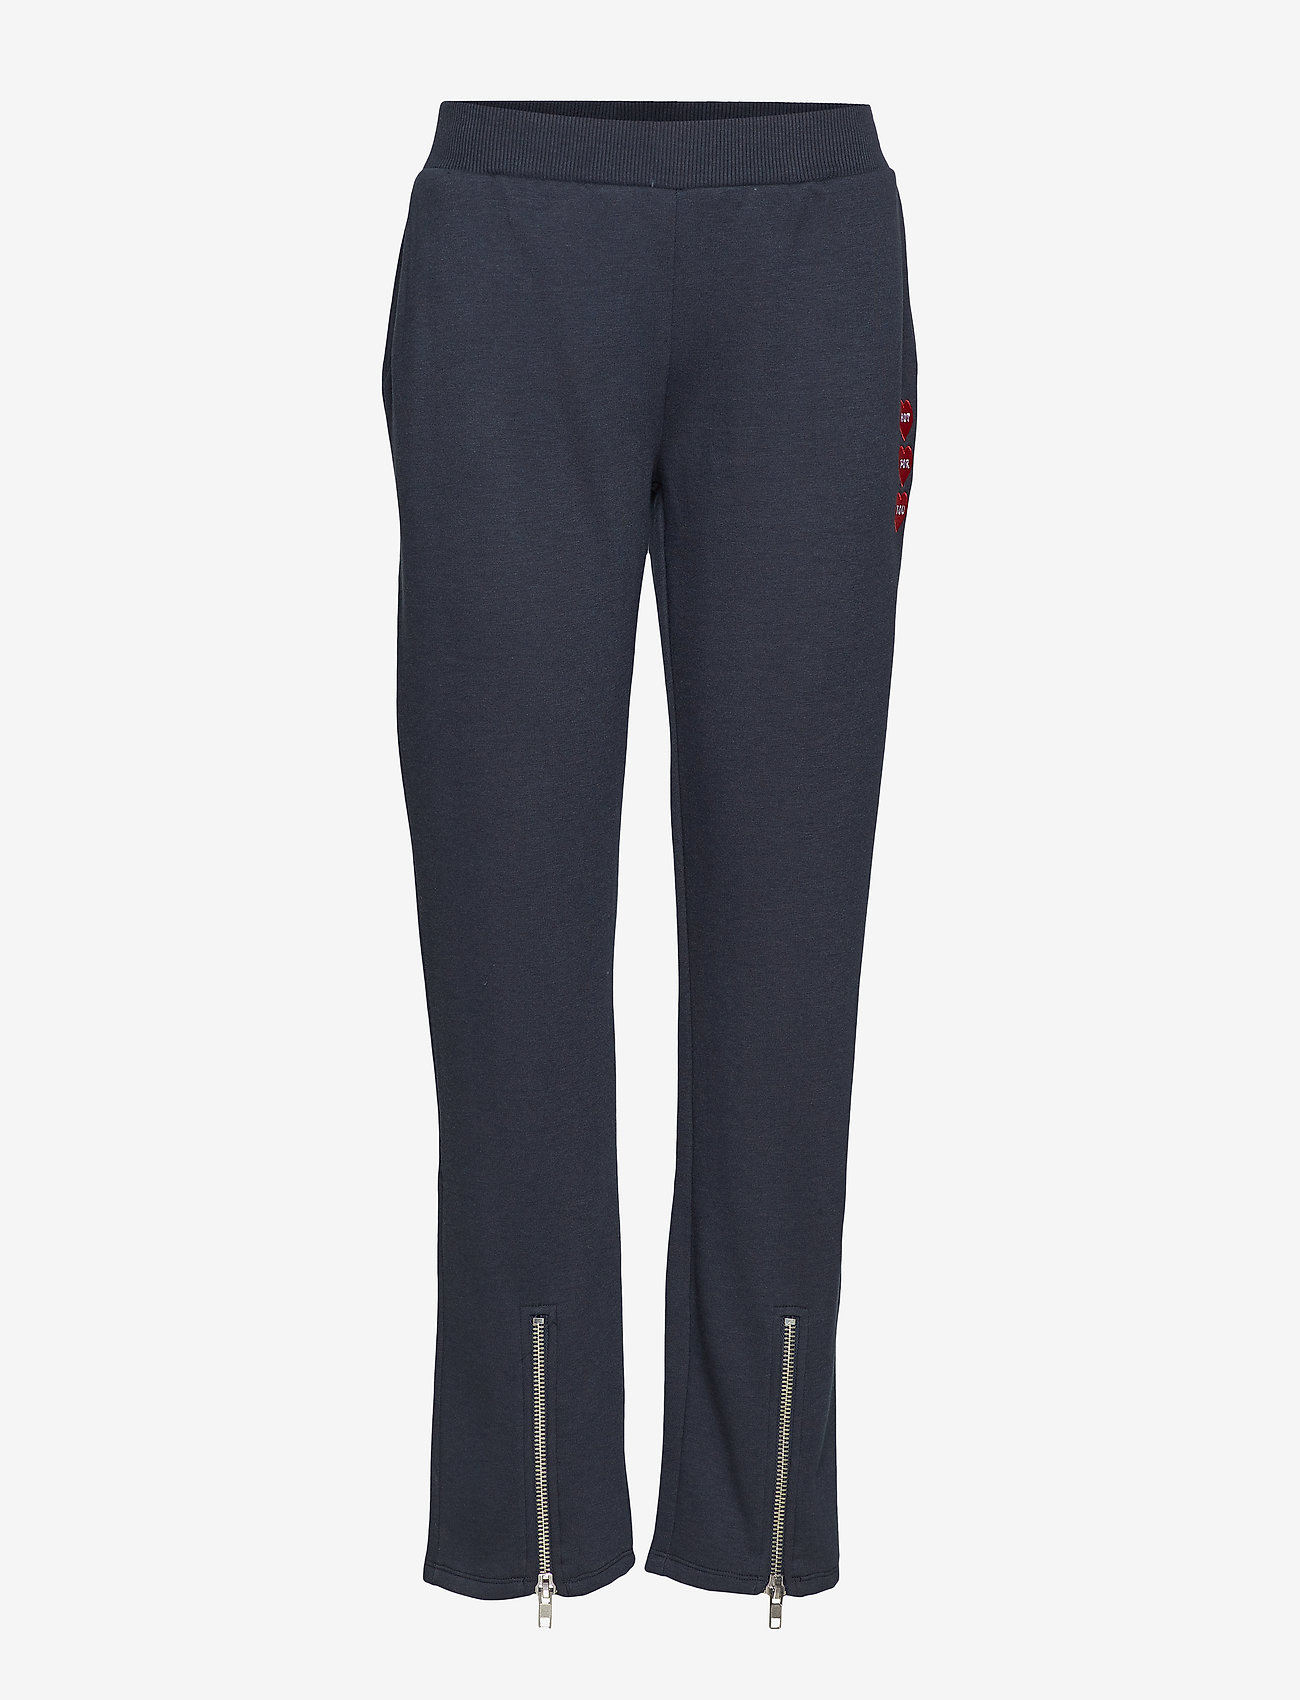 Zoe Karssen - HIGH WAIST ZIP SWEATPANTS - sweatpants - salute